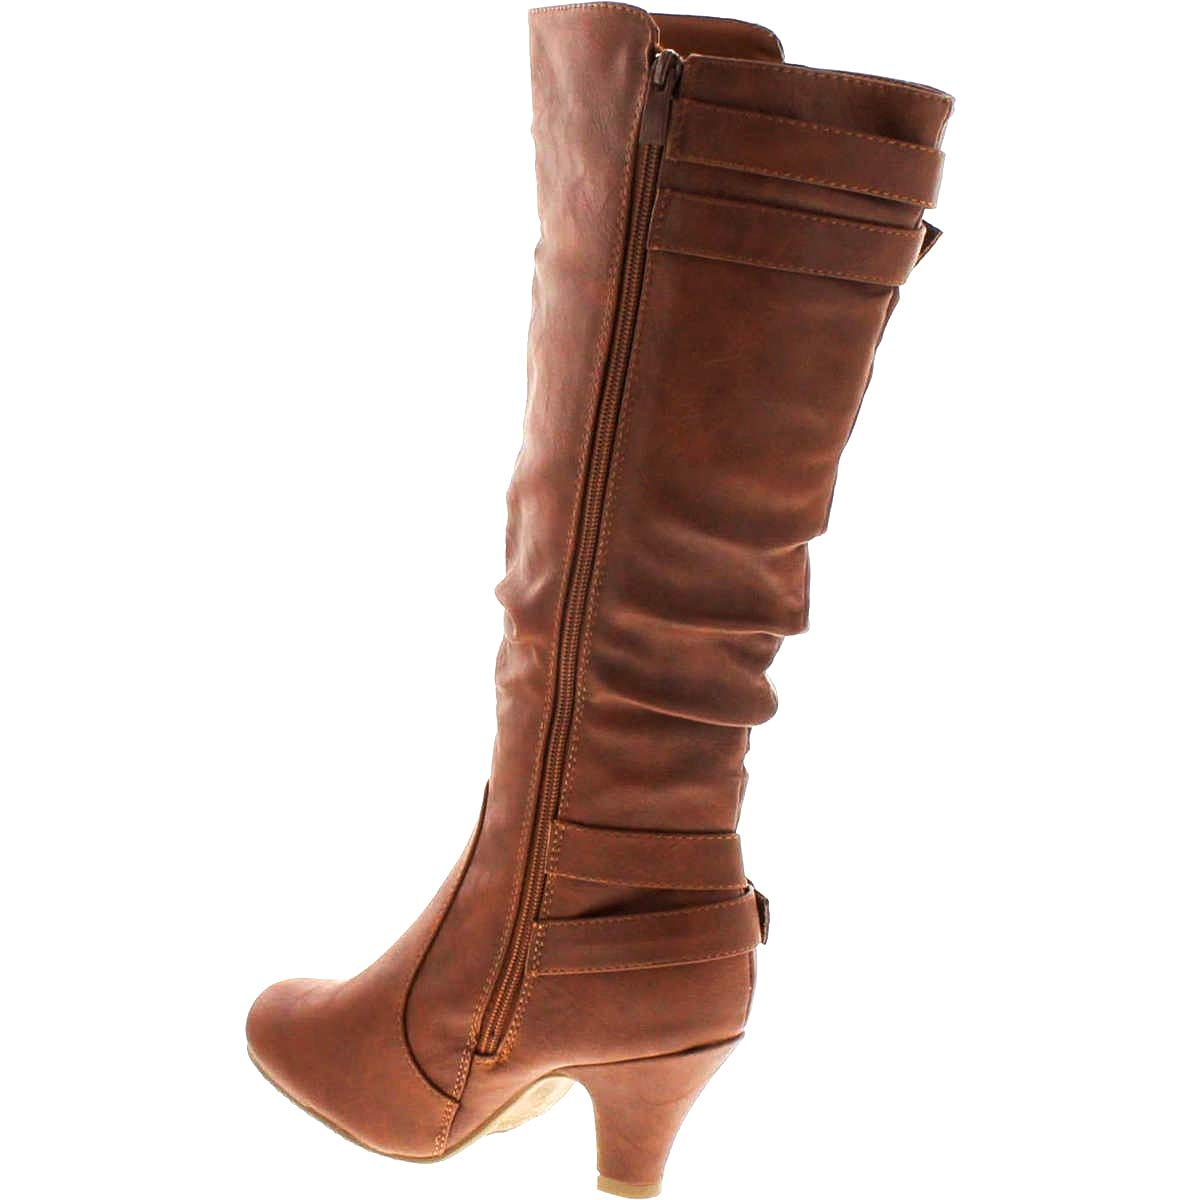 Top Moda Womens Bag-55 Knee High Buckle Slouched Kitten Heel Leatherette Fashion Boots 8.5, Tan